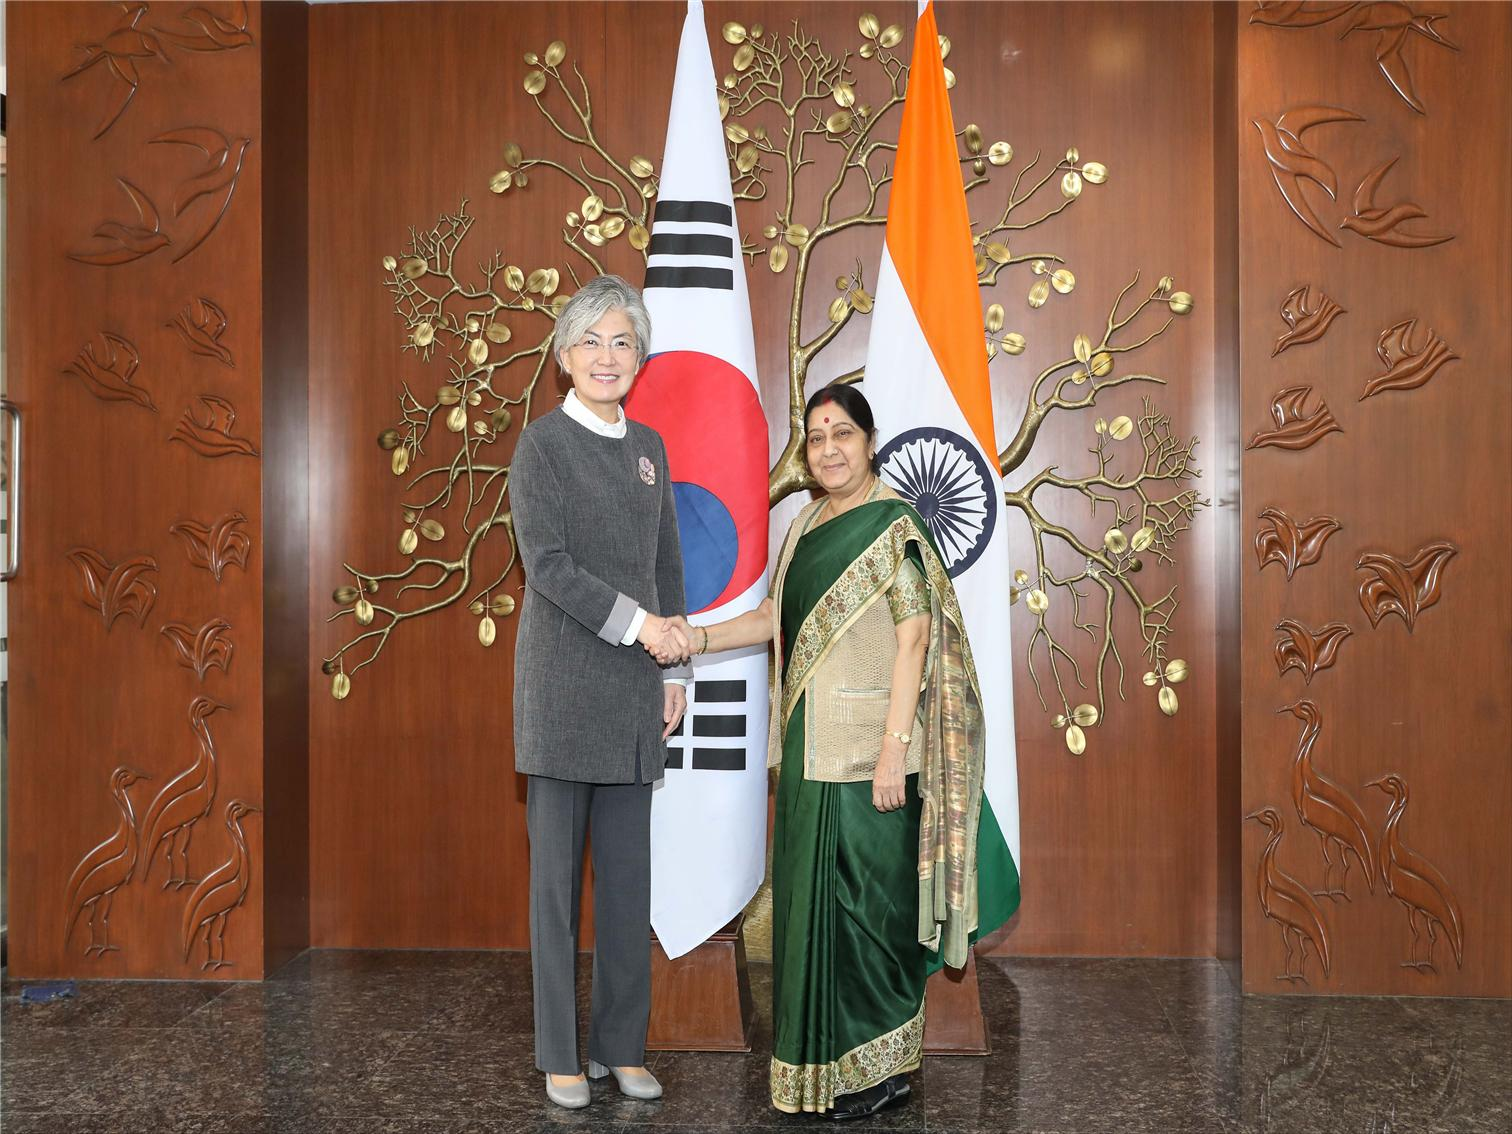 Foreign Minister Visits India, ROK's Key Partner for its New Southern Policy